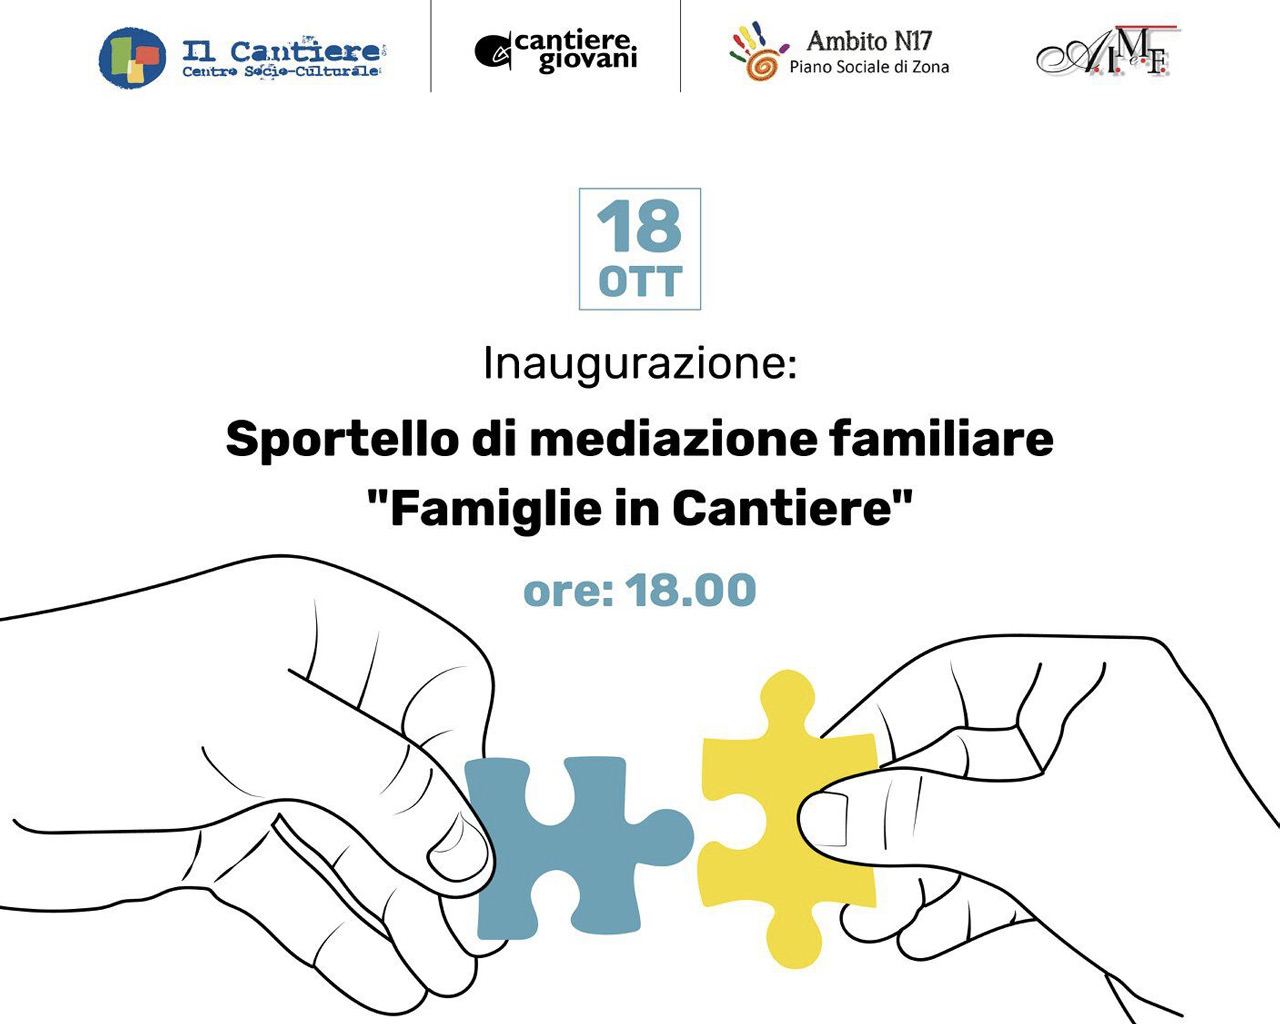 Famiglie in Cantiere